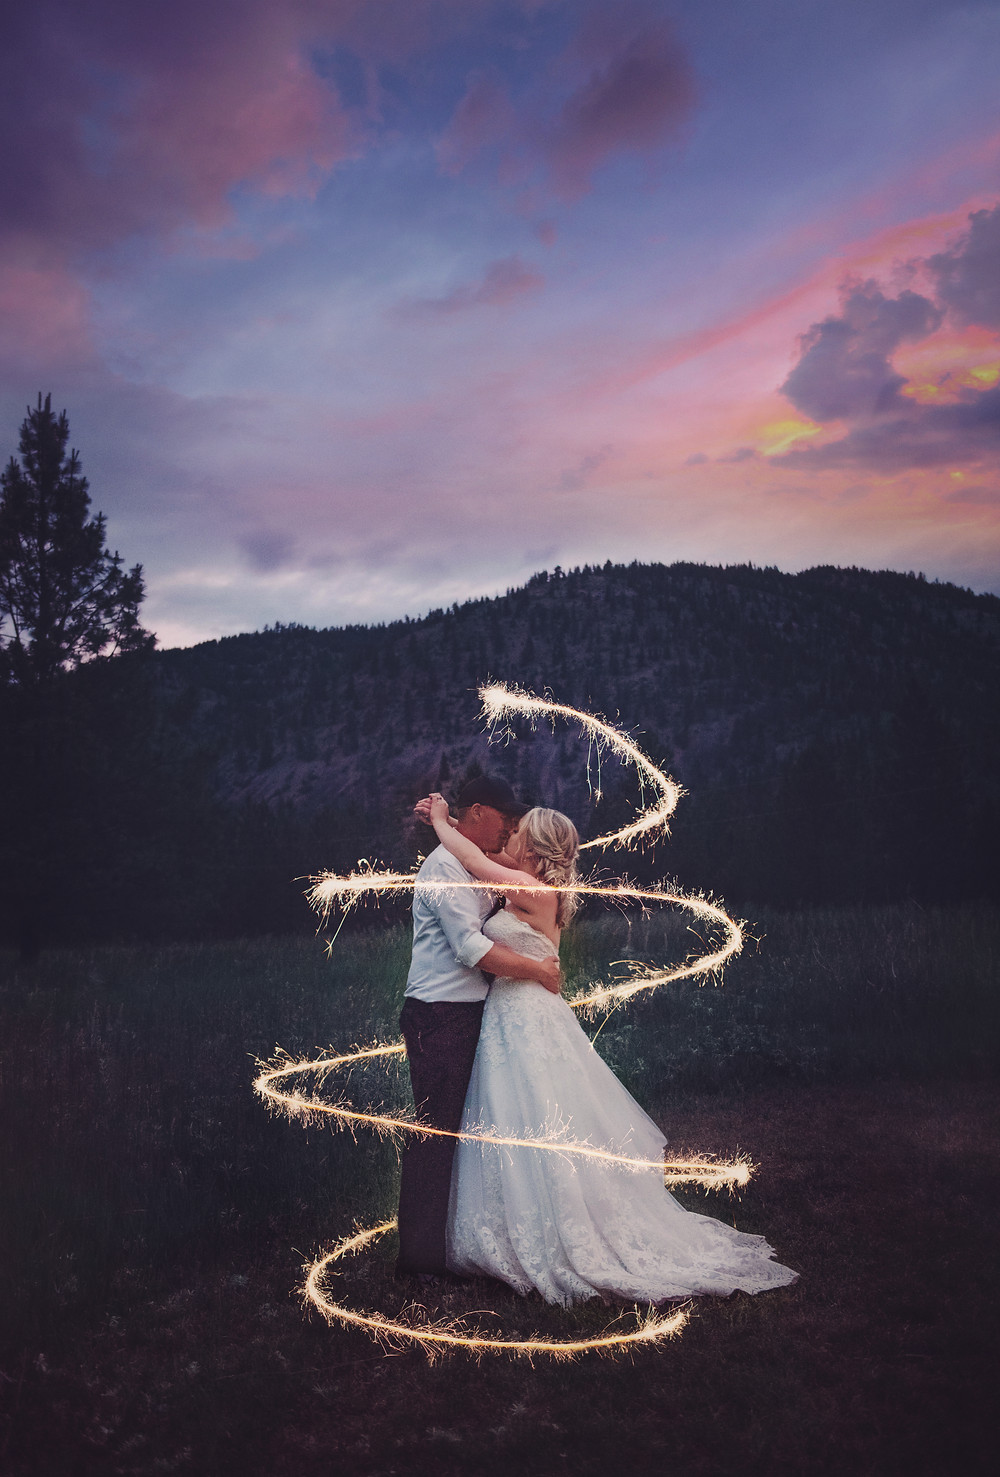 Montana Wedding Photographer | Infinite Photography Missoula | Missoula Wedding Photographer | Montana Wedding Photographers | White Raven Venue Montana | Weddings